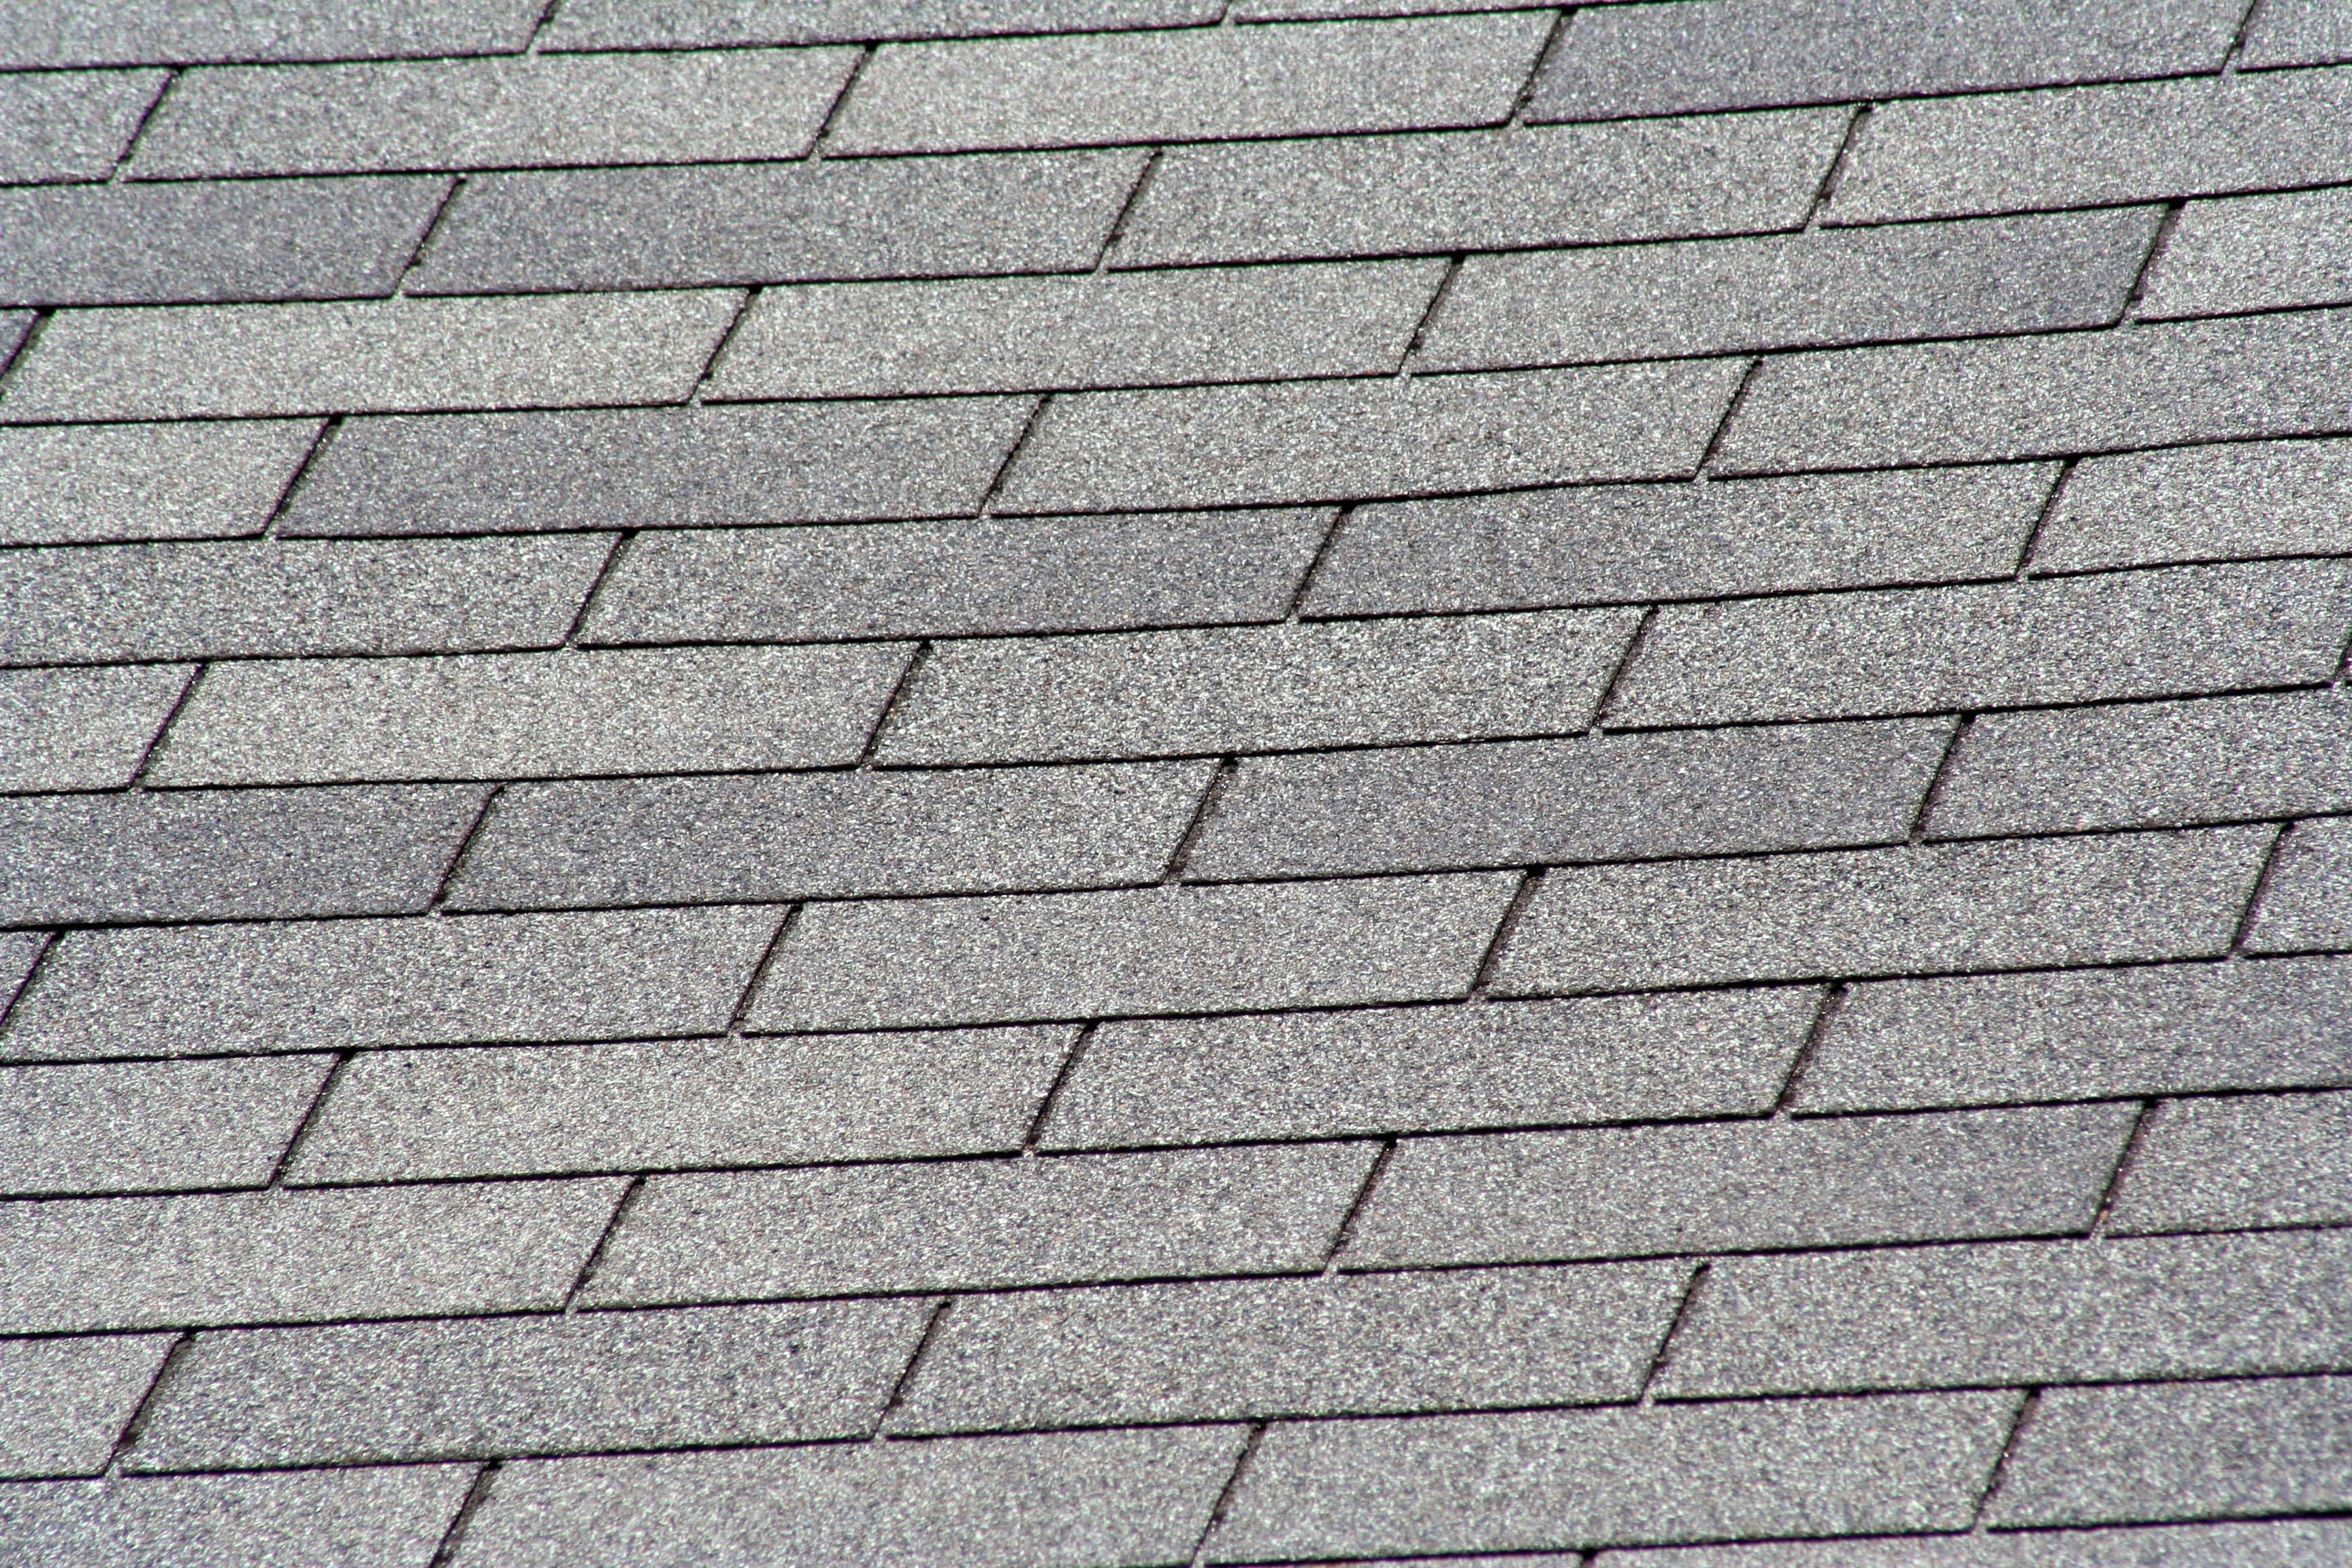 shingles on a roof